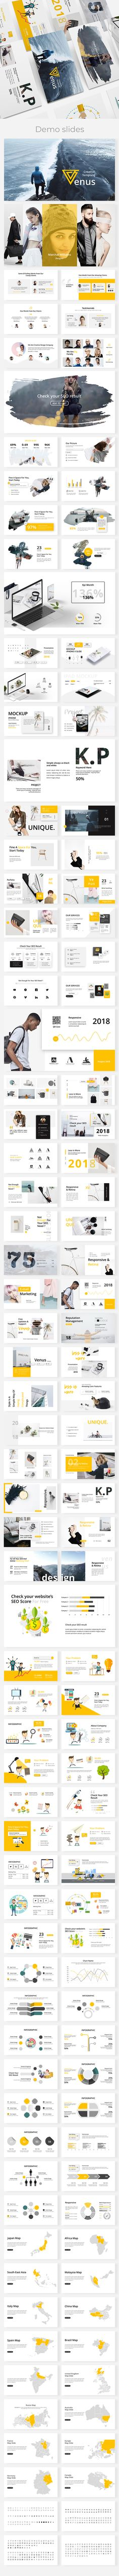 Buy Venus Creative Powerpoint Template by ESTE_Studio on GraphicRiver. Features: 120 unique slides Aspect Ratio no more broken images! Easy and fully editable (shape color, size, posi. Marketing Presentation, Corporate Presentation, Presentation Slides, Presentation Design, Presentation Templates, Keynote Design, Slide Template, Creative Powerpoint Templates, Creative Visualization